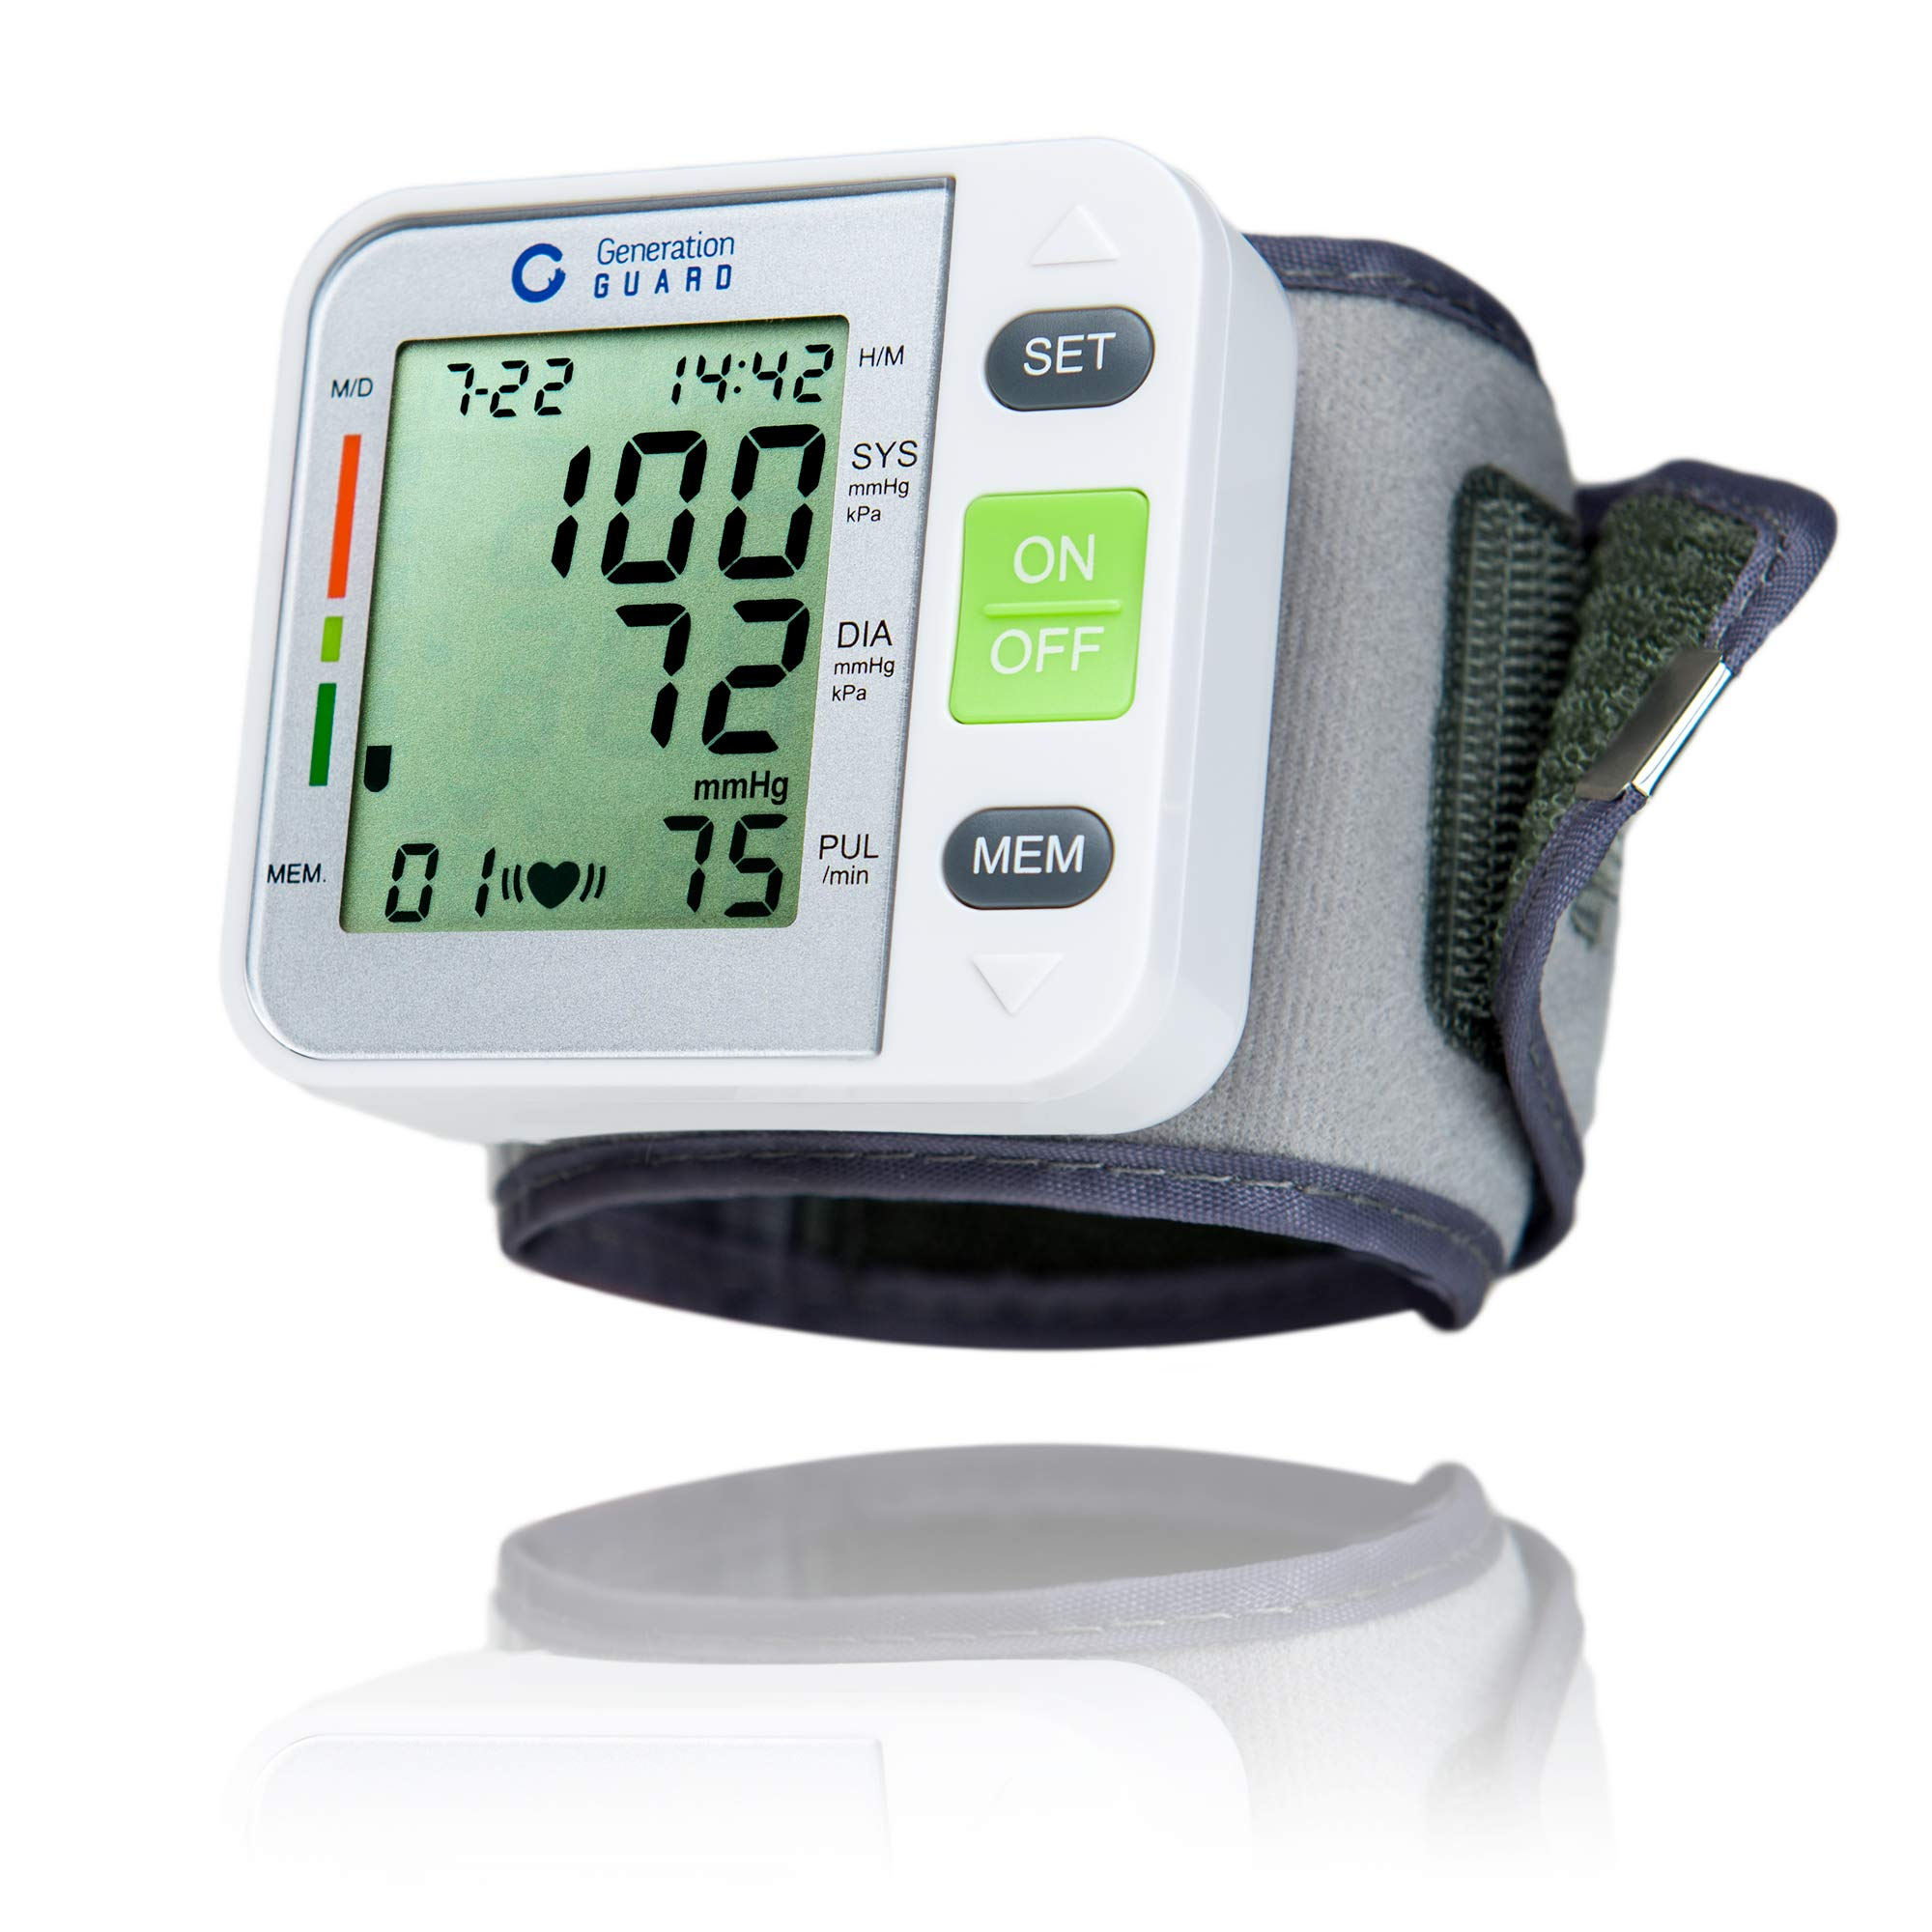 Clinical Automatic Blood Pressure Monitor FDA Approved by Generation Guard with Large Screen Display Portable Case Irregular Heartbeat BP and Adjustable Wrist Cuff Perfect for Health Monitoring by Generation Guard